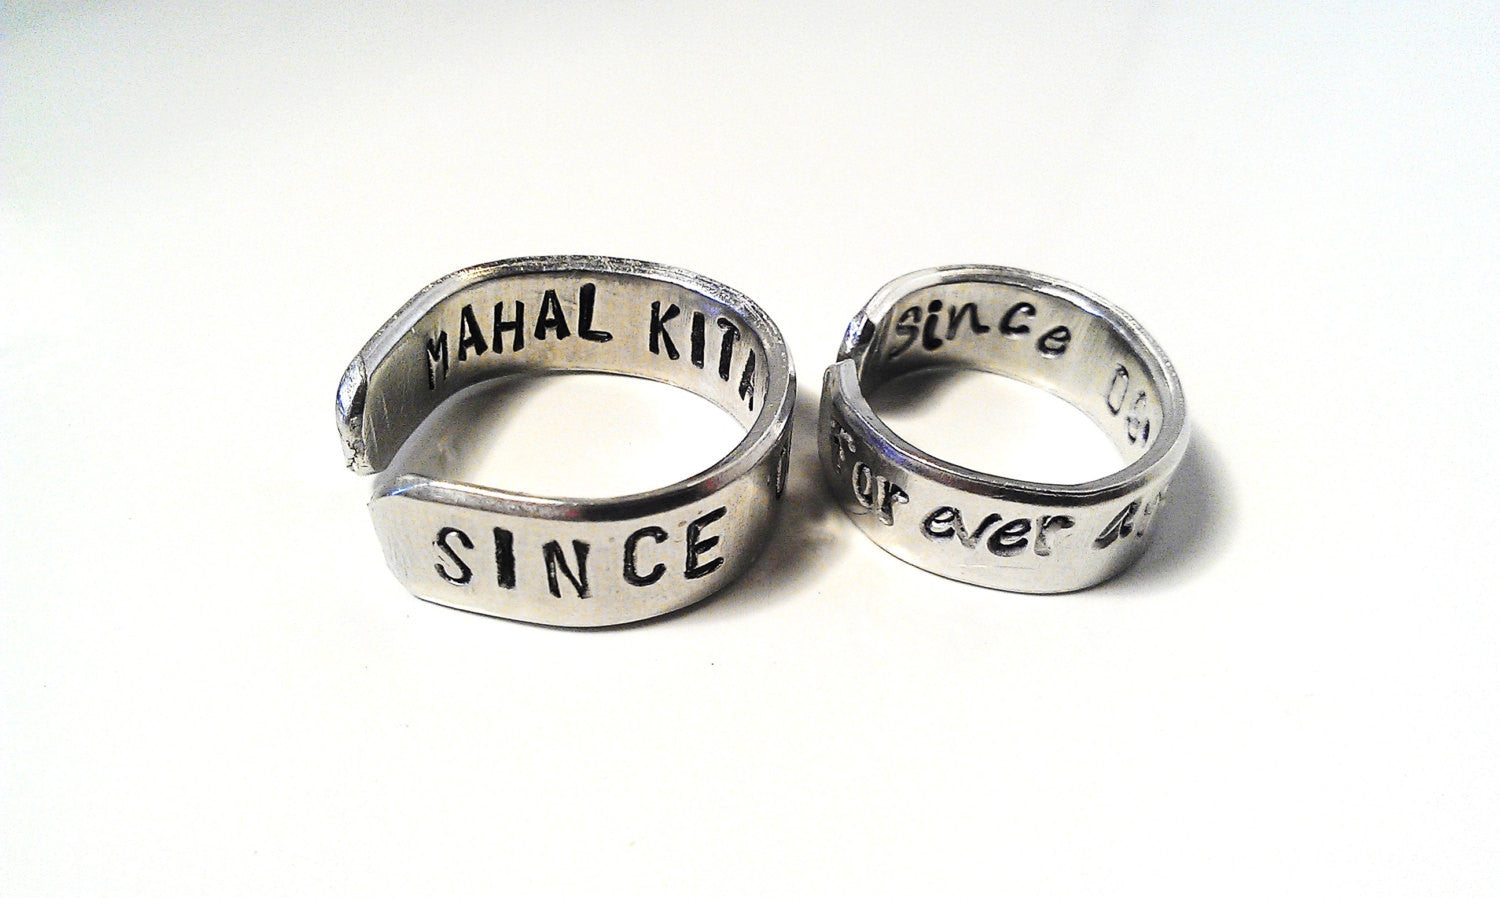 His Her Ring Engraved Metal Stamped Silver Secret Message Adjustable Custom Personalized Unisex Couples Mens Womens Promise Anniversary Gift